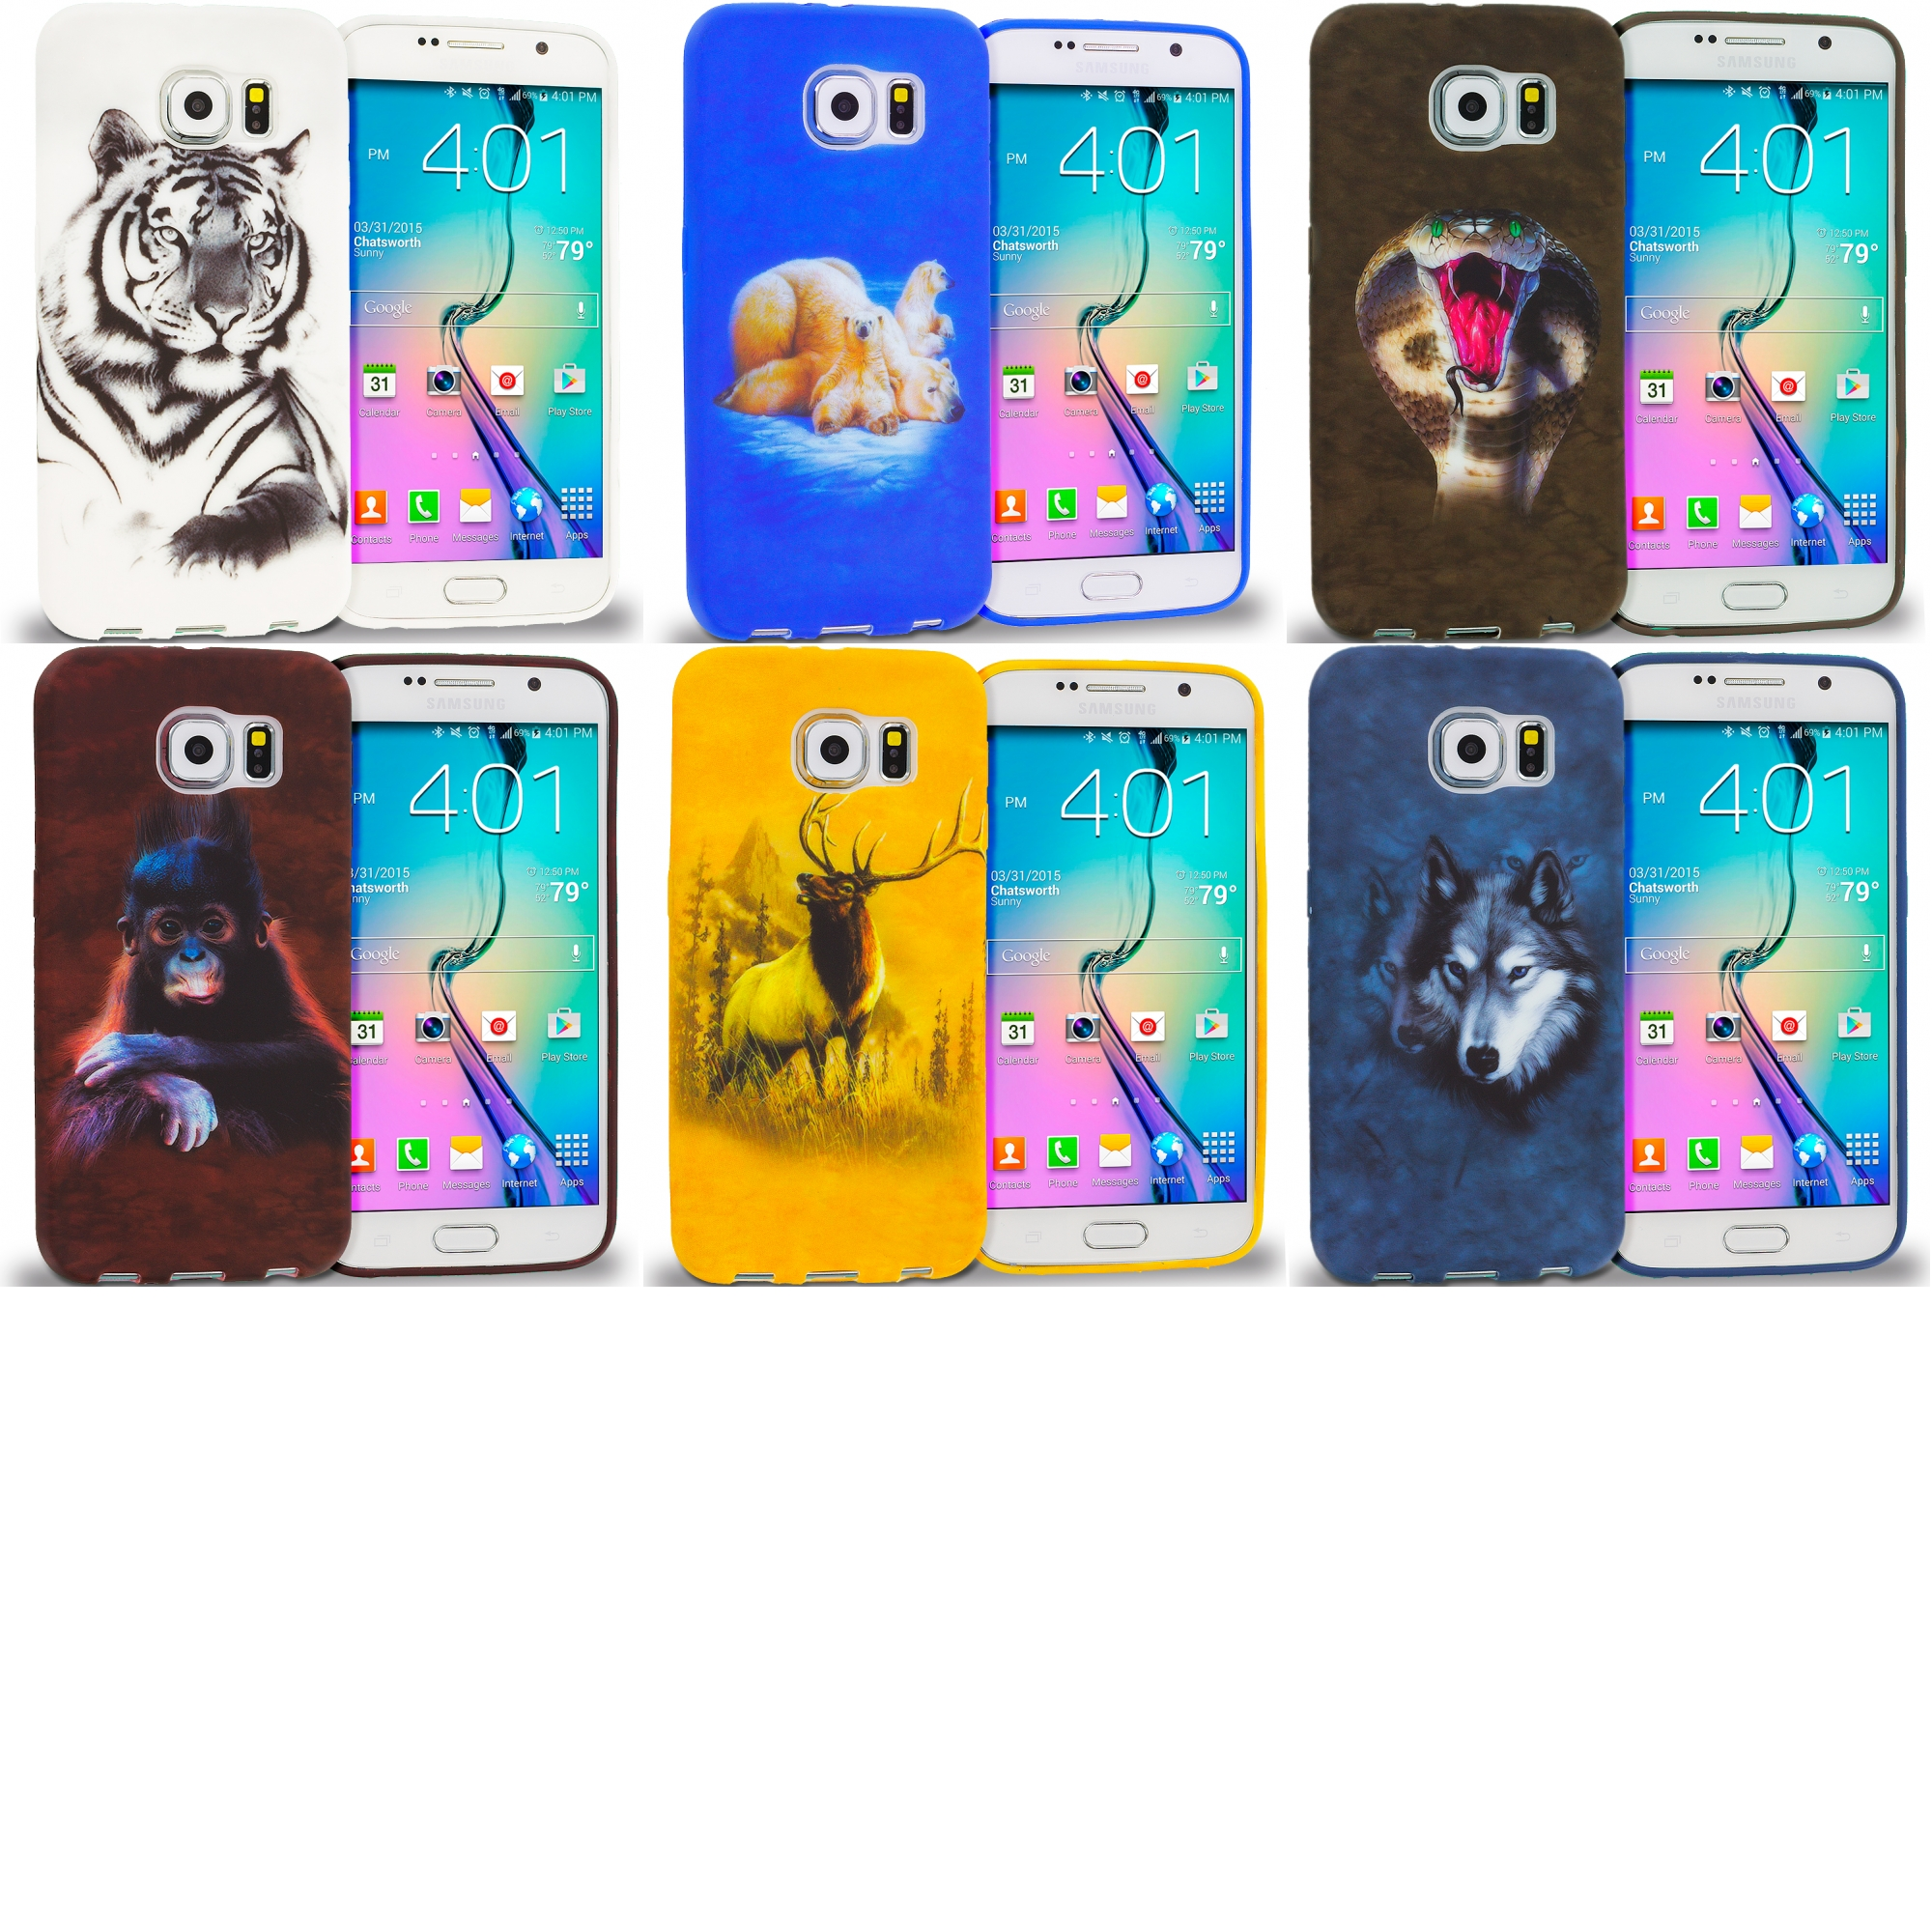 Samsung Galaxy S6 Combo Pack : Tiger TPU Design Soft Rubber Case Cover